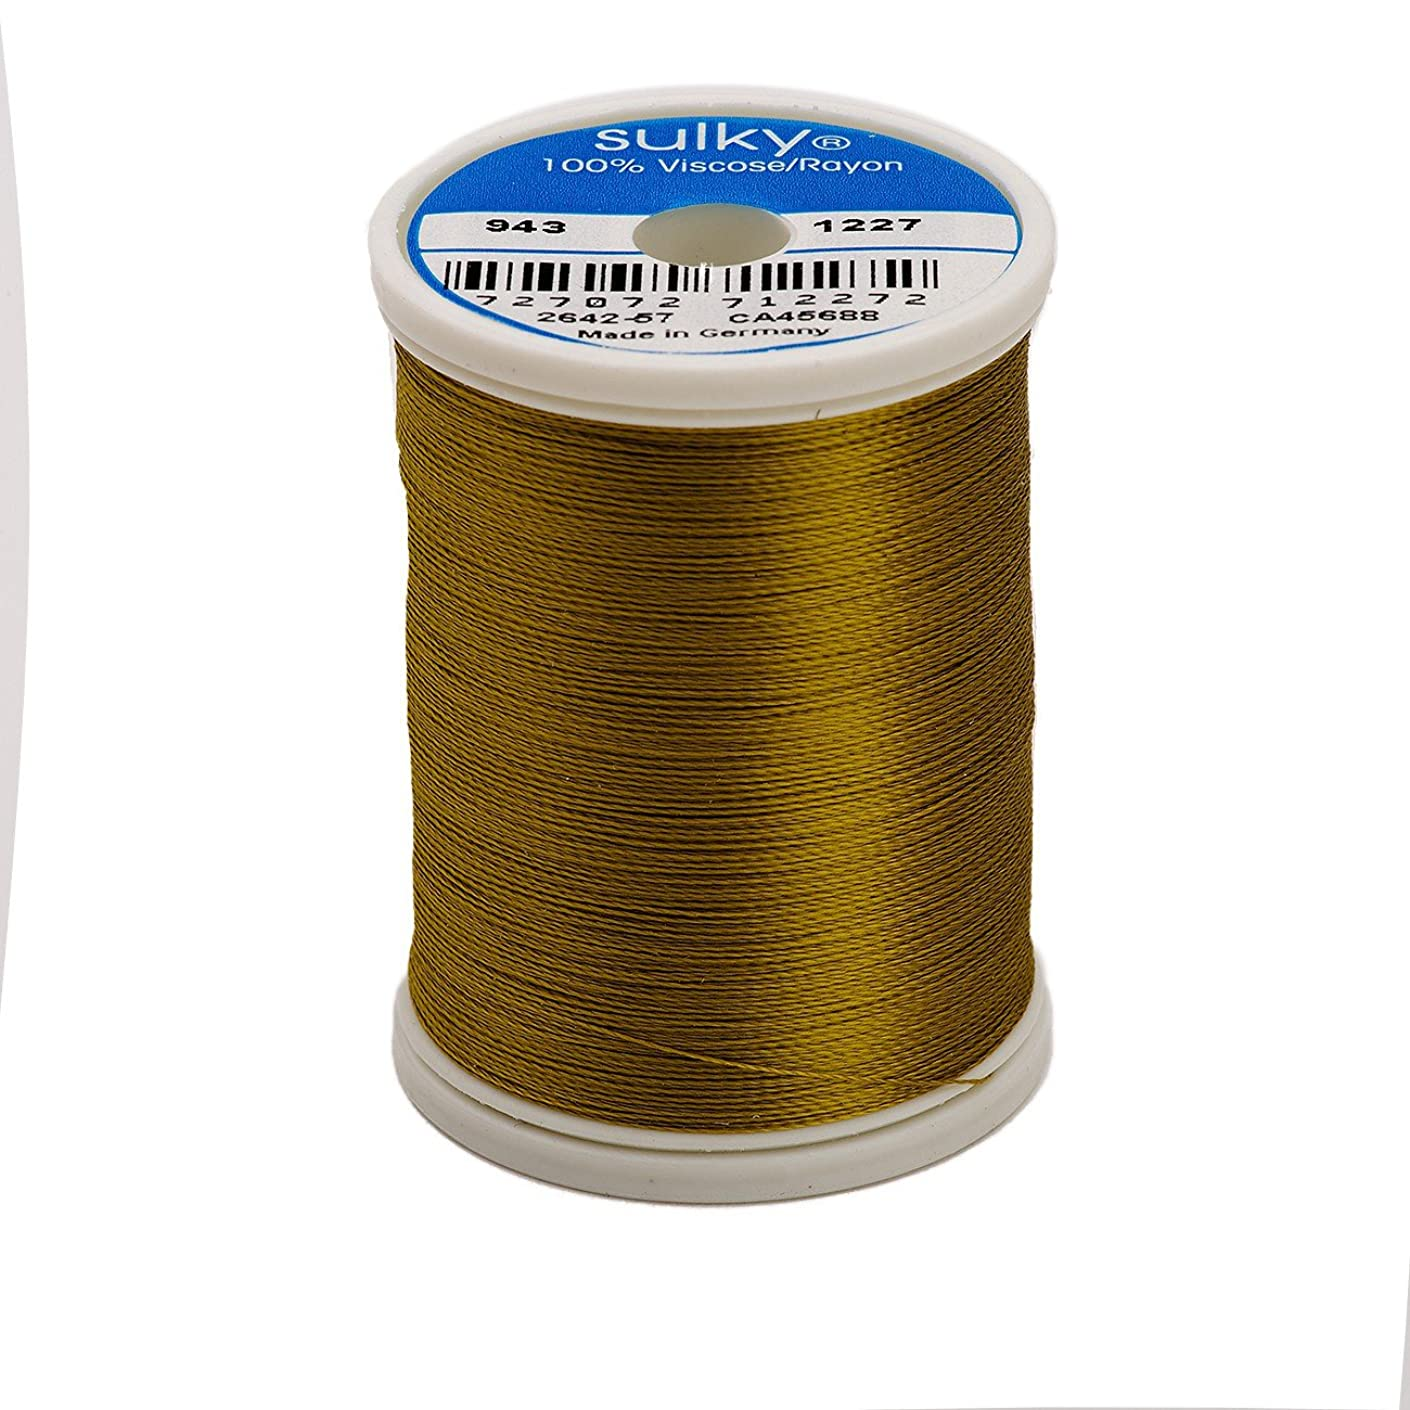 Sulky Of America 268d 40wt 2-Ply Rayon Thread, 850 yd, Gold Green